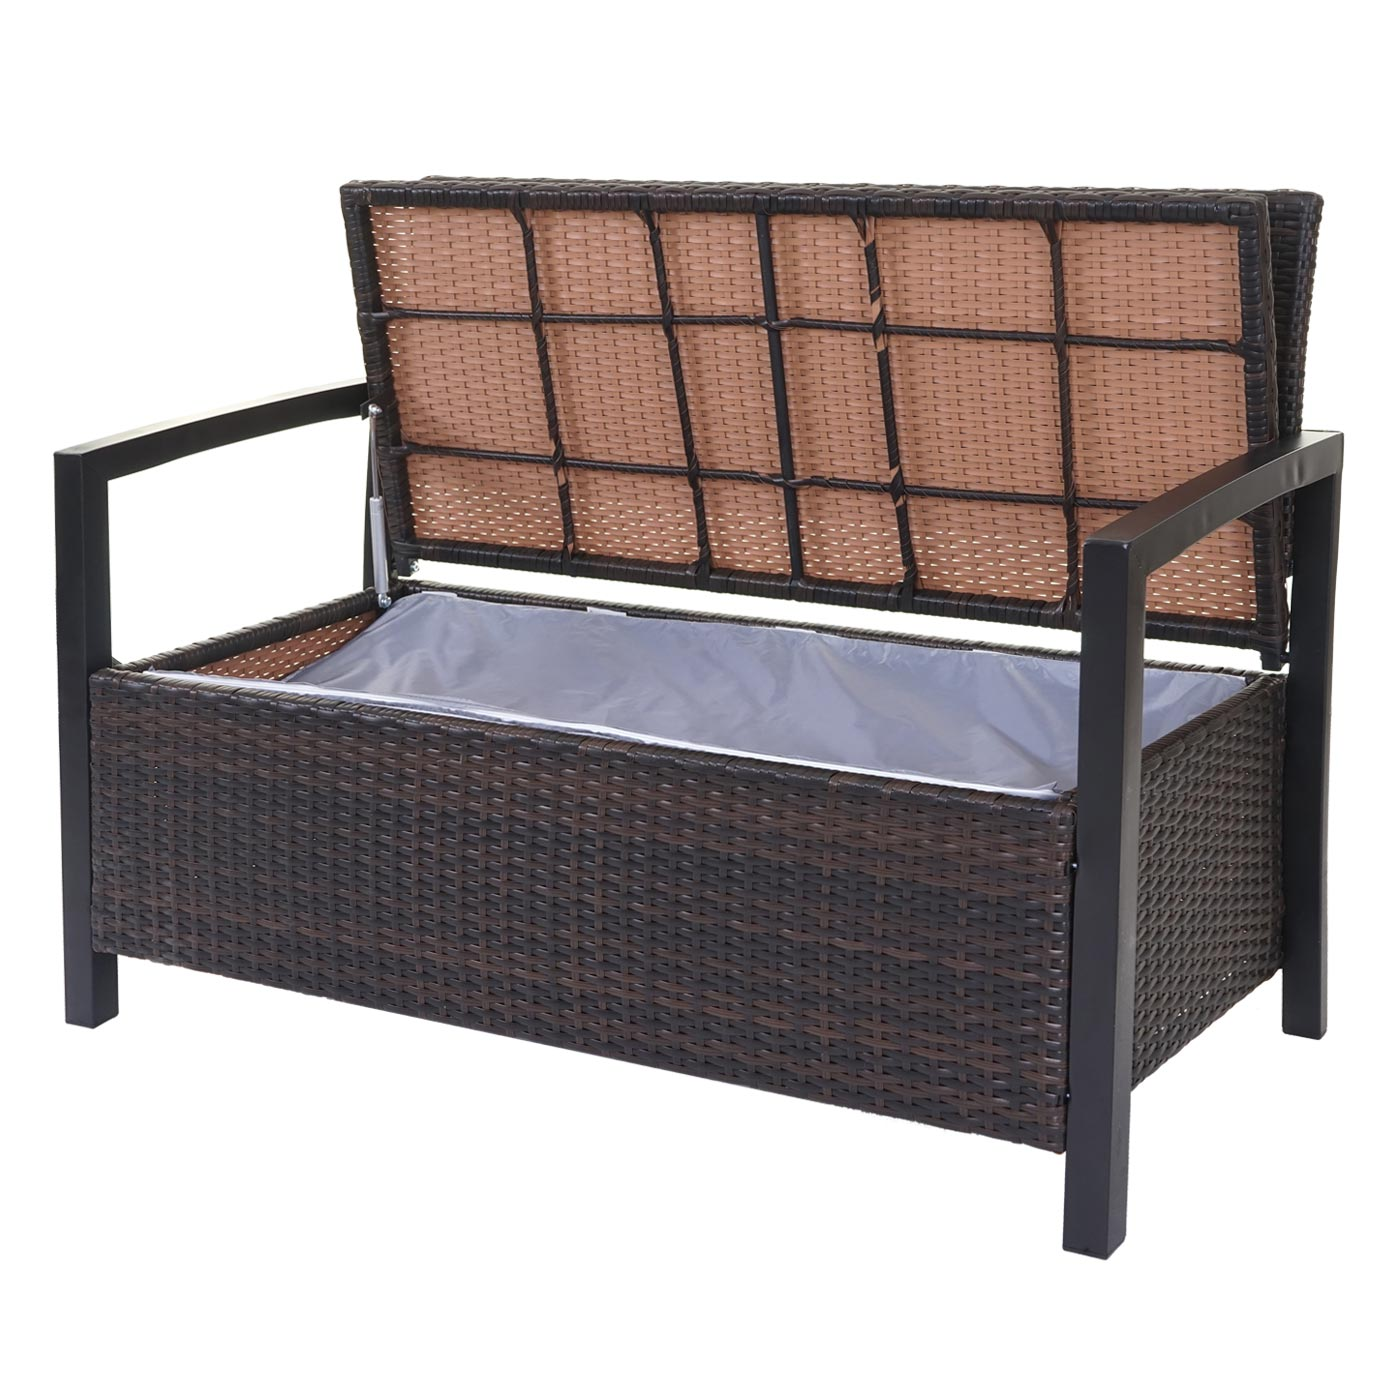 poly rattan gartenbank hwc a12 truhenbank bank staufach sitzkissen braun kissen creme. Black Bedroom Furniture Sets. Home Design Ideas